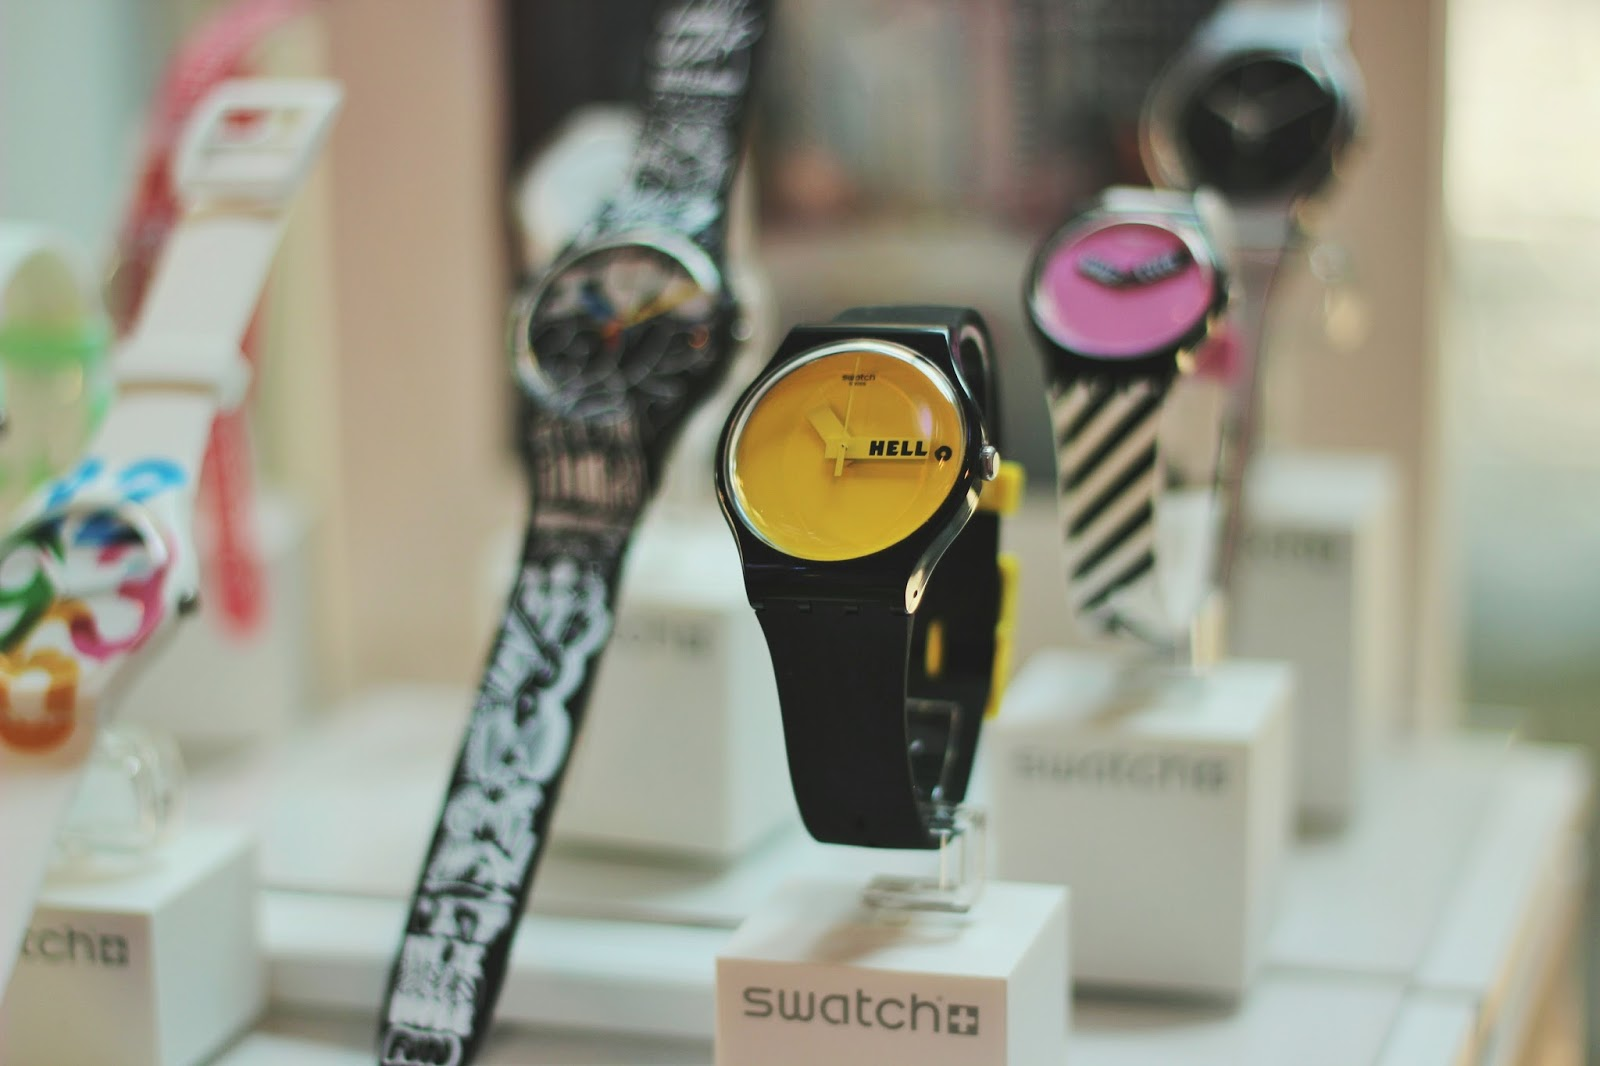 SWATCH WATCH FALL/WINTER COLLECTION 2015 PREVIEW | THE REPORT